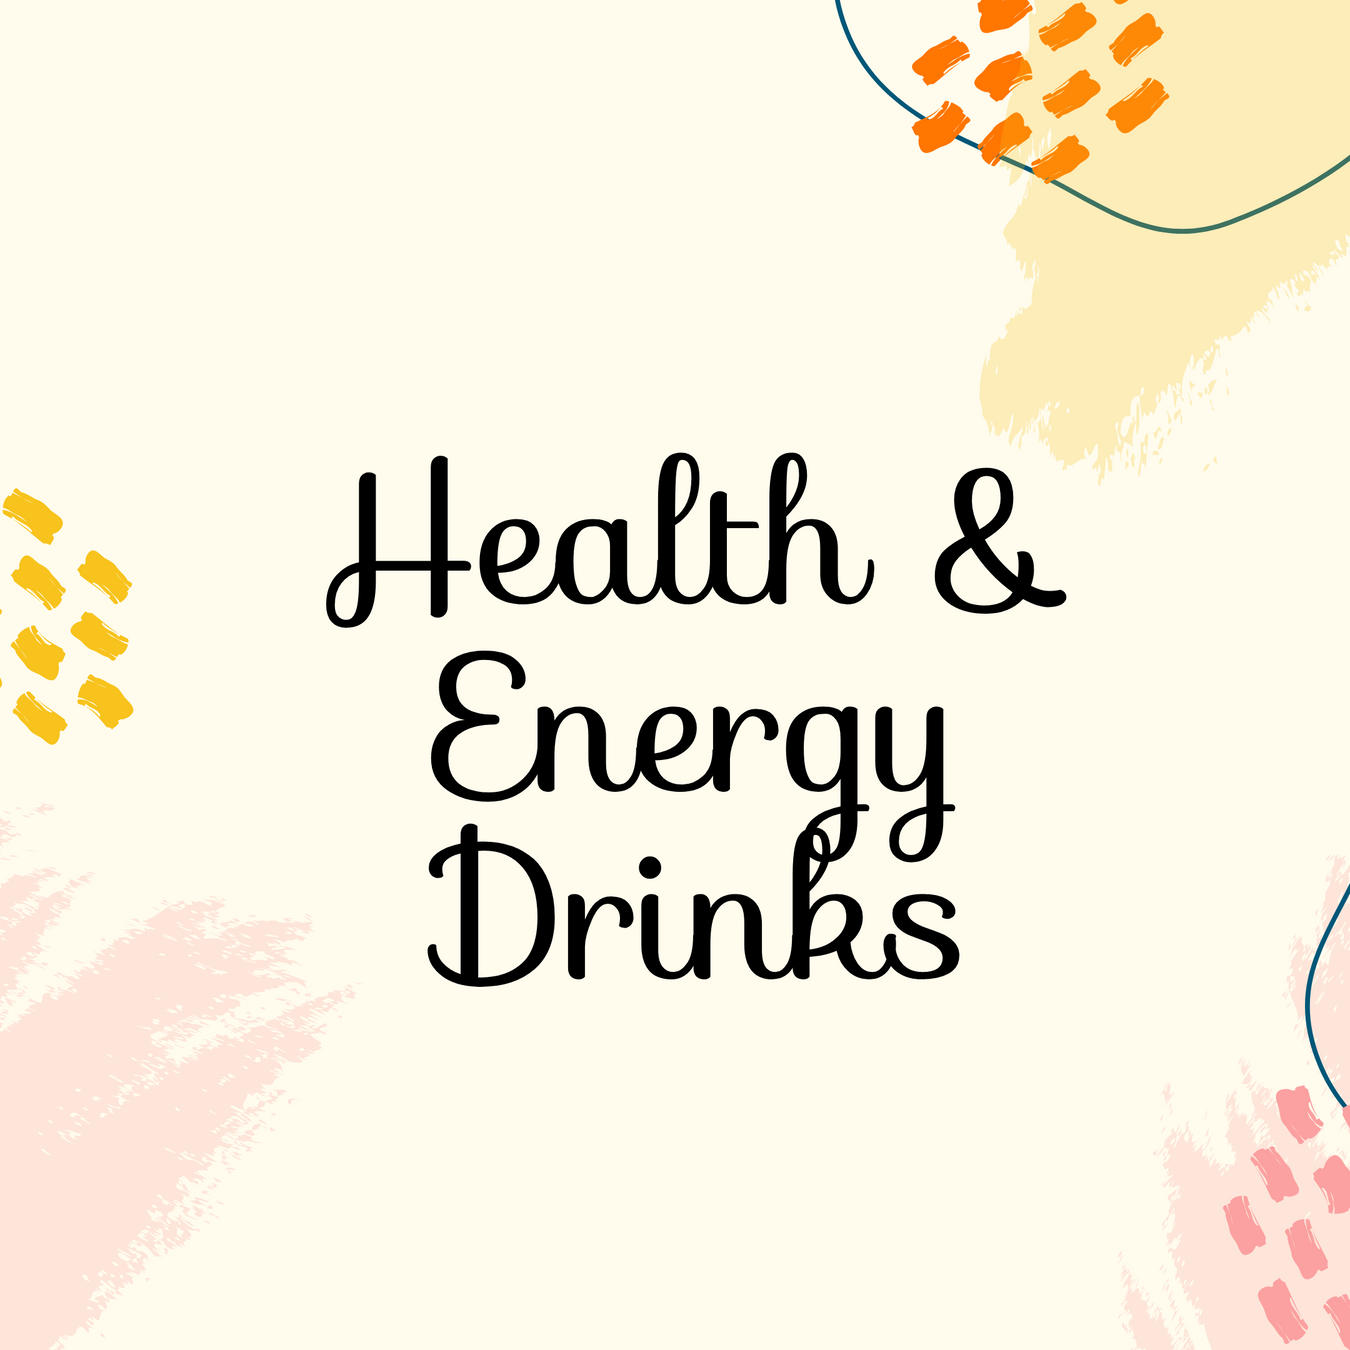 Health & Energy Drinks